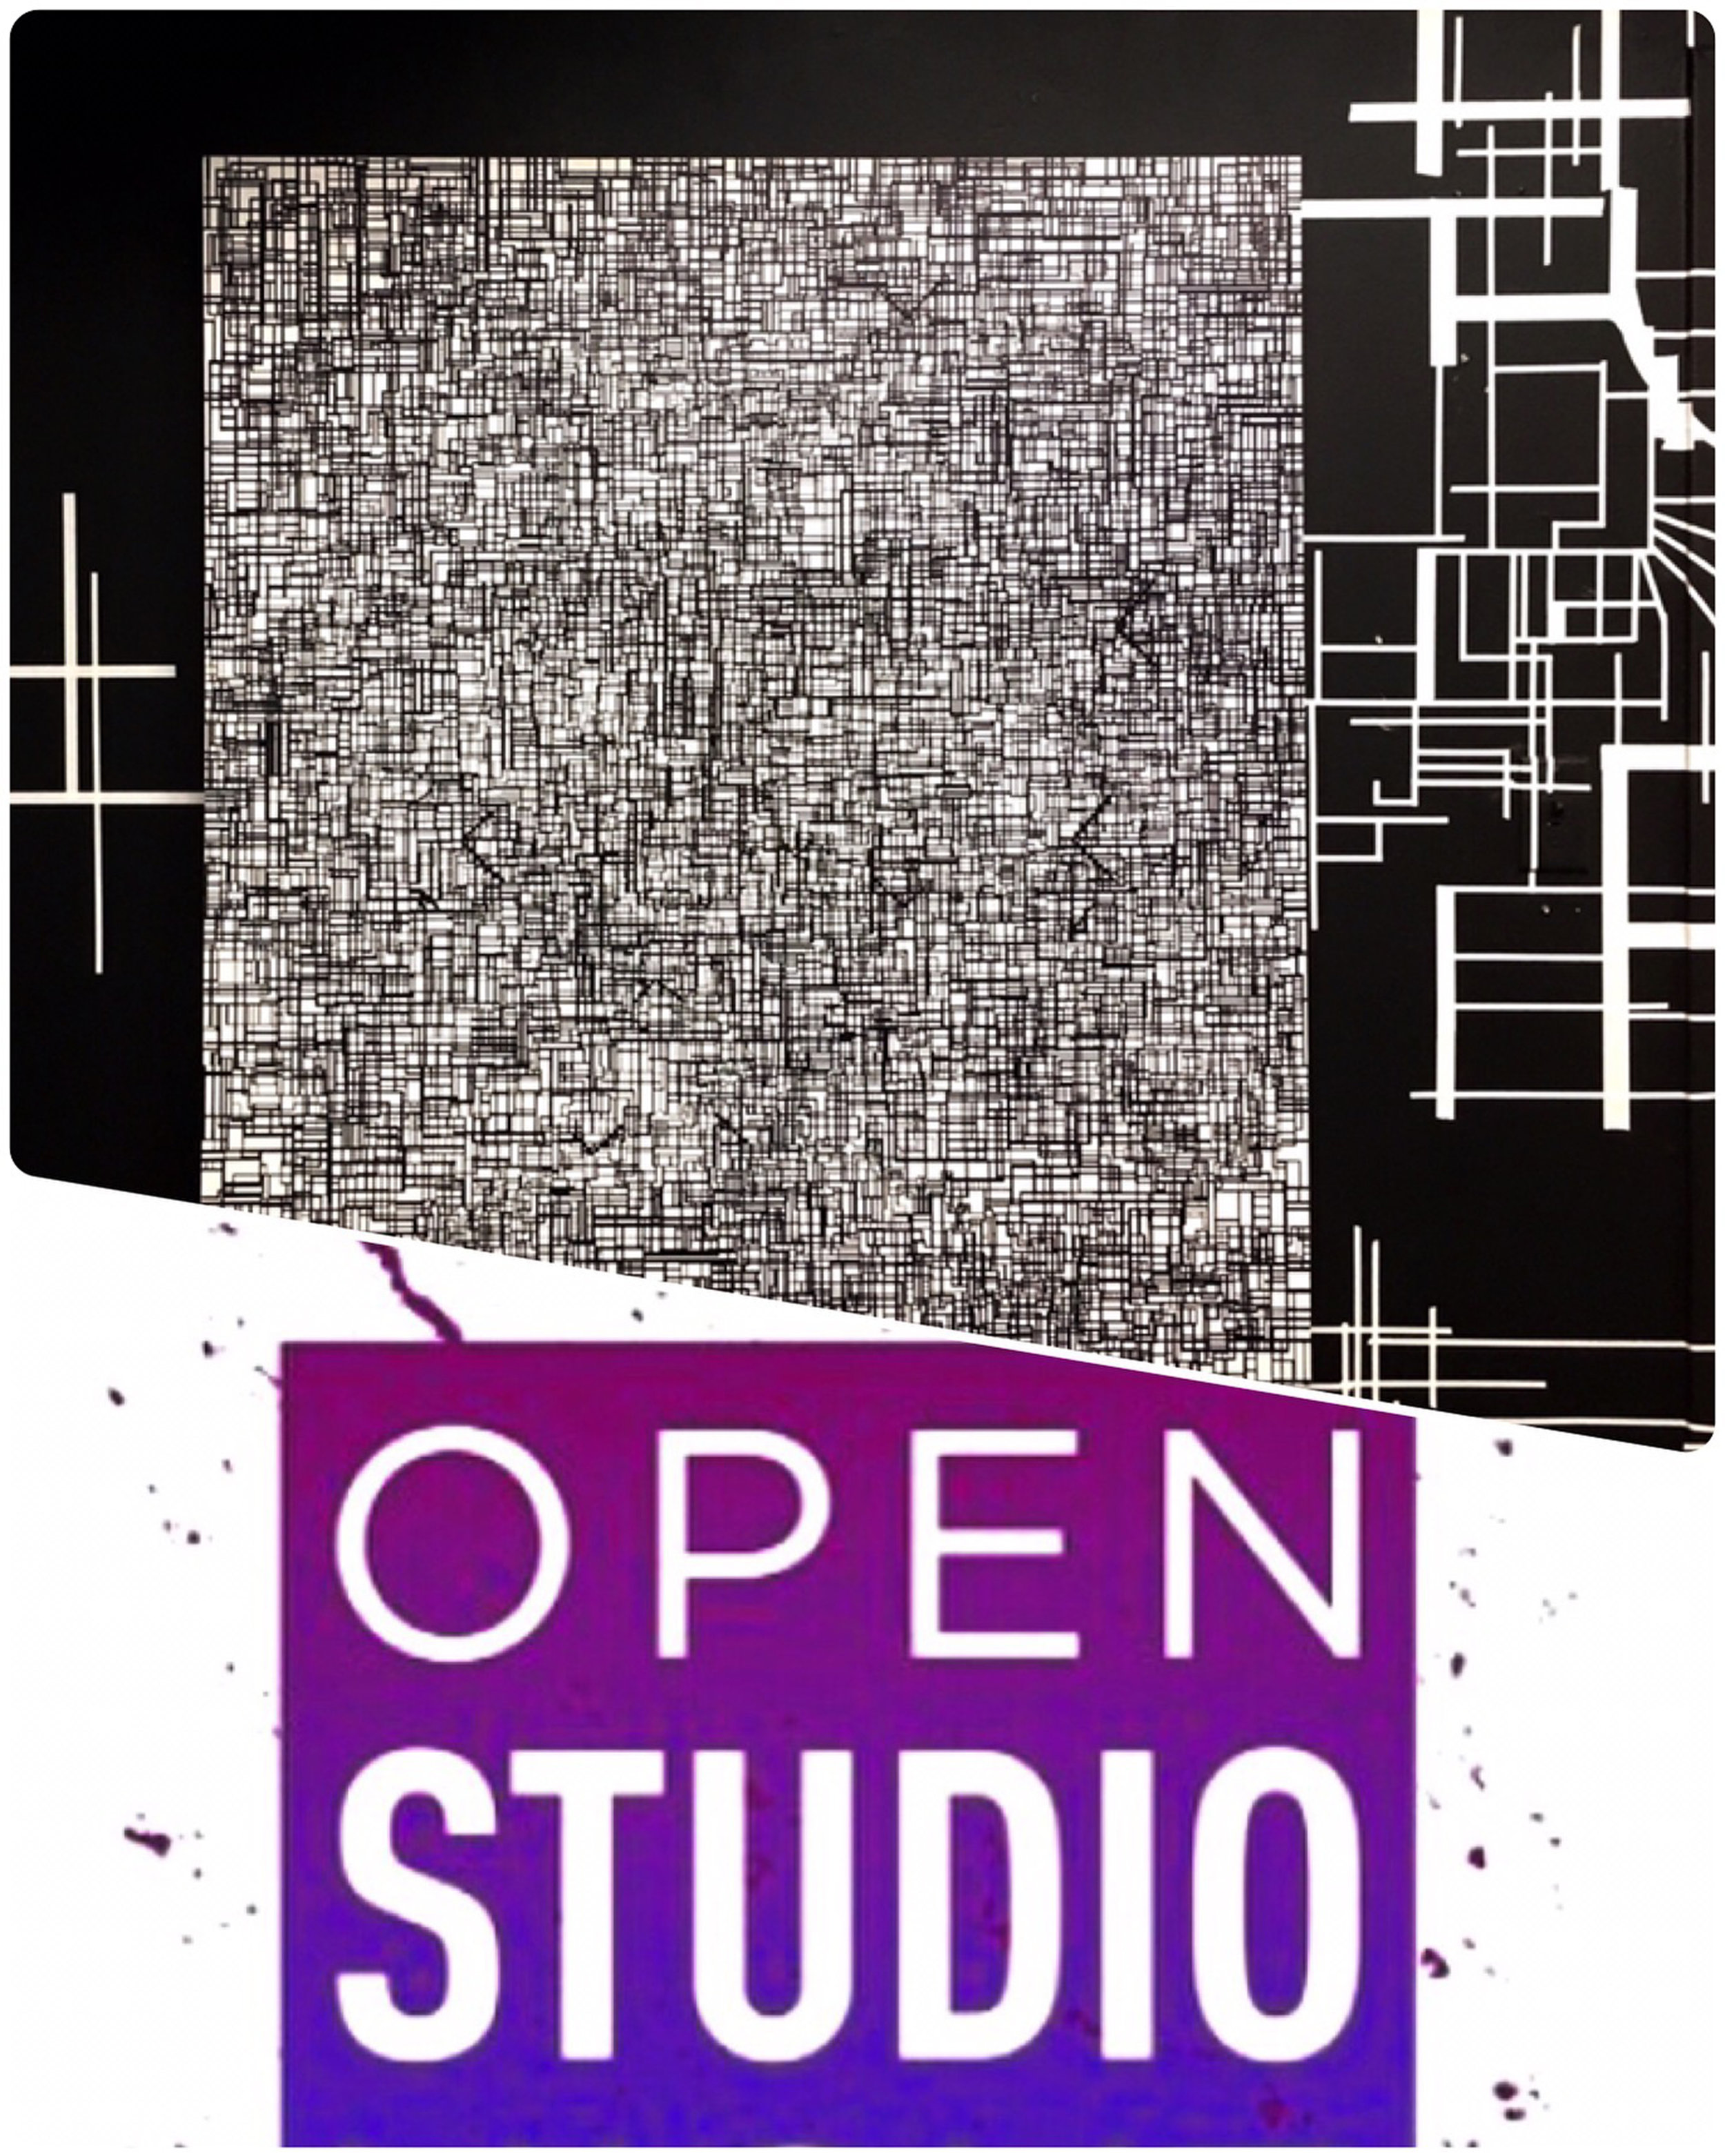 - Discover art from the next creative generation at Open Studio Night SavannahFriday, Oct. 267-9 p.m.Alexander Hall668 Indian St.Savannah, GACelebrate SCAD artists at Open Studio Night, one of Savannah's largest art sales events.Open Studio Night showcases the best painting, photography, ceramics, printmaking and sculpture by SCAD students, faculty and alumni. Most of the work exhibited will be available for purchase.visit SCAD Art Sales for purchasing informationThis event is free and open to the public